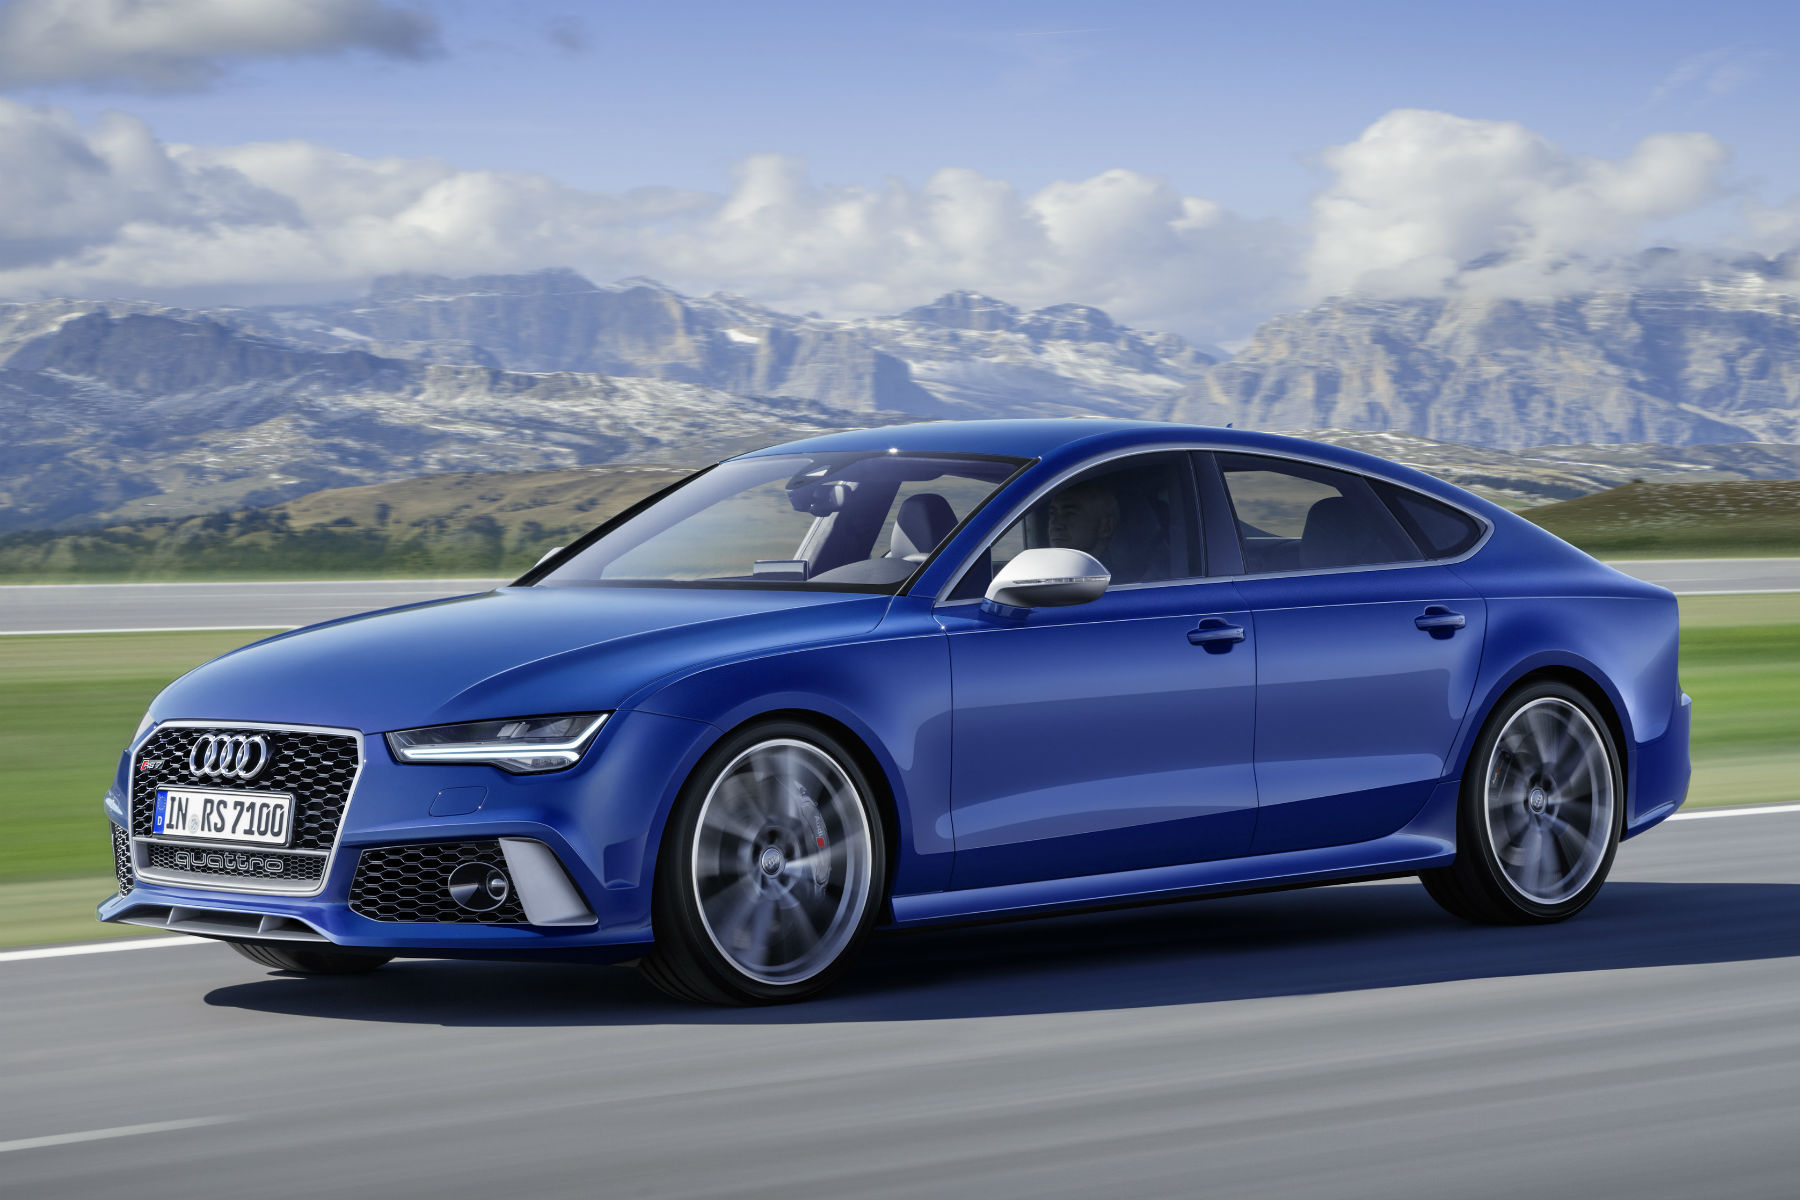 605hp Audi RS6 and RS7 performance editions revealed